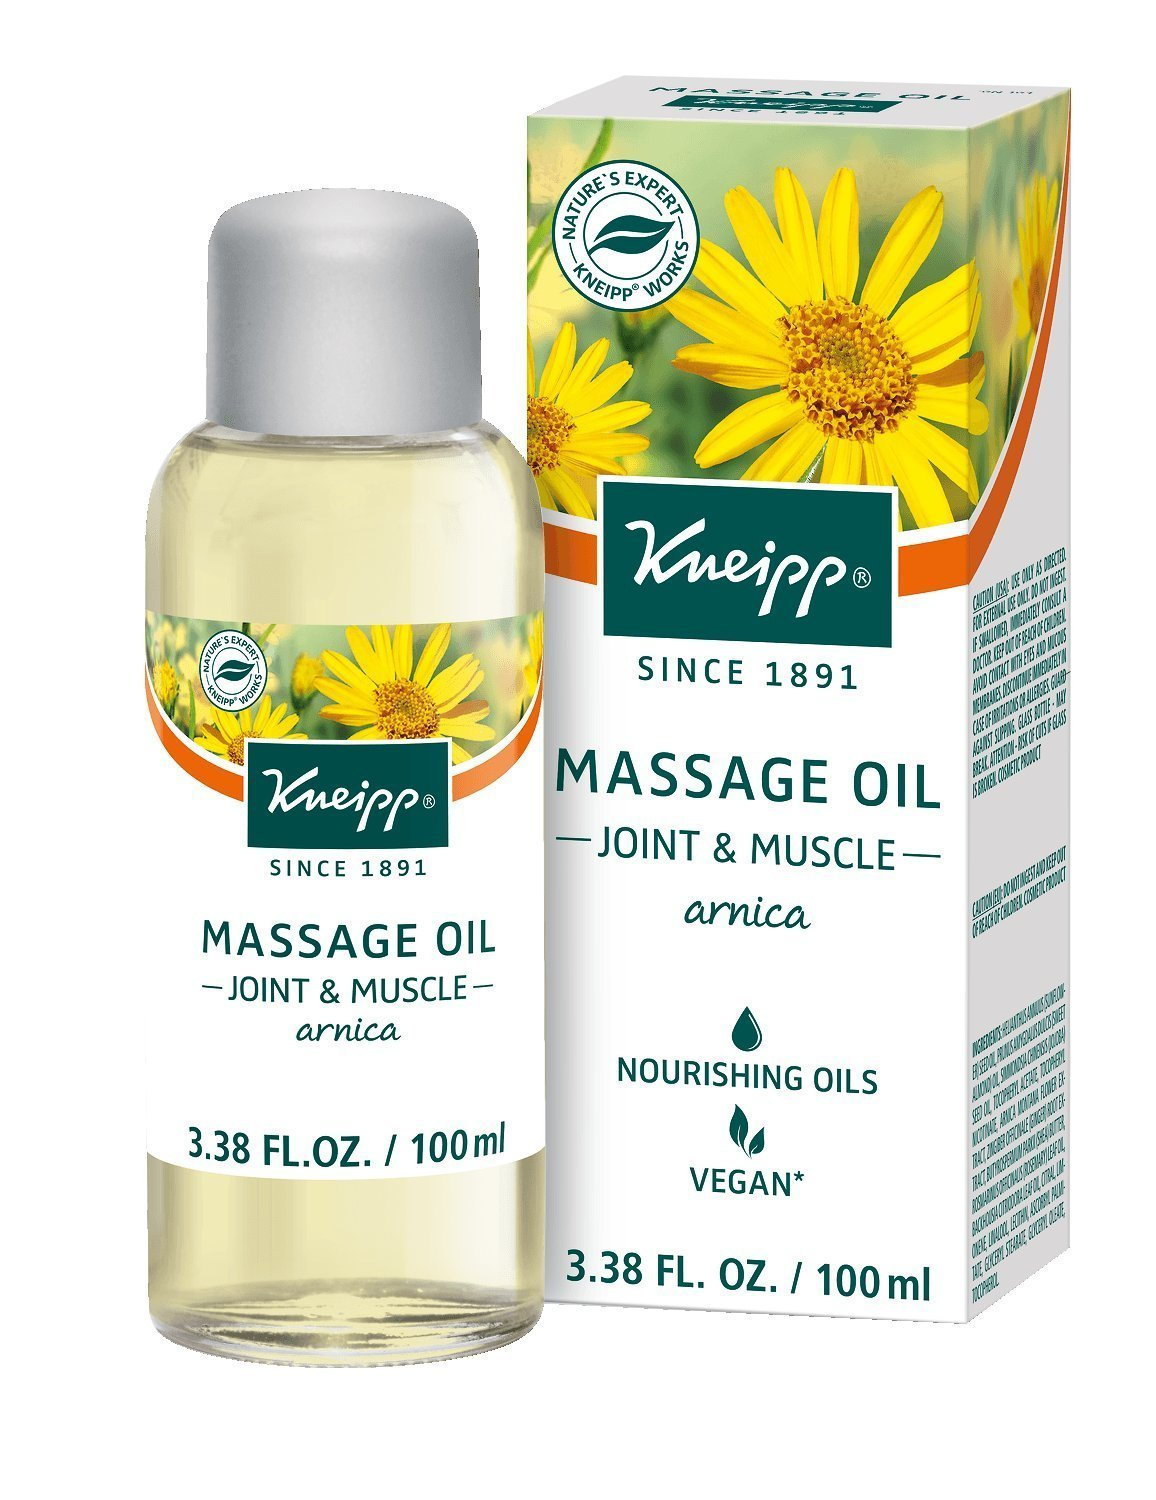 Kneipp Massage Oil, Arnica, Joint & Muscle, 3.38 fl. oz. by Kneipp